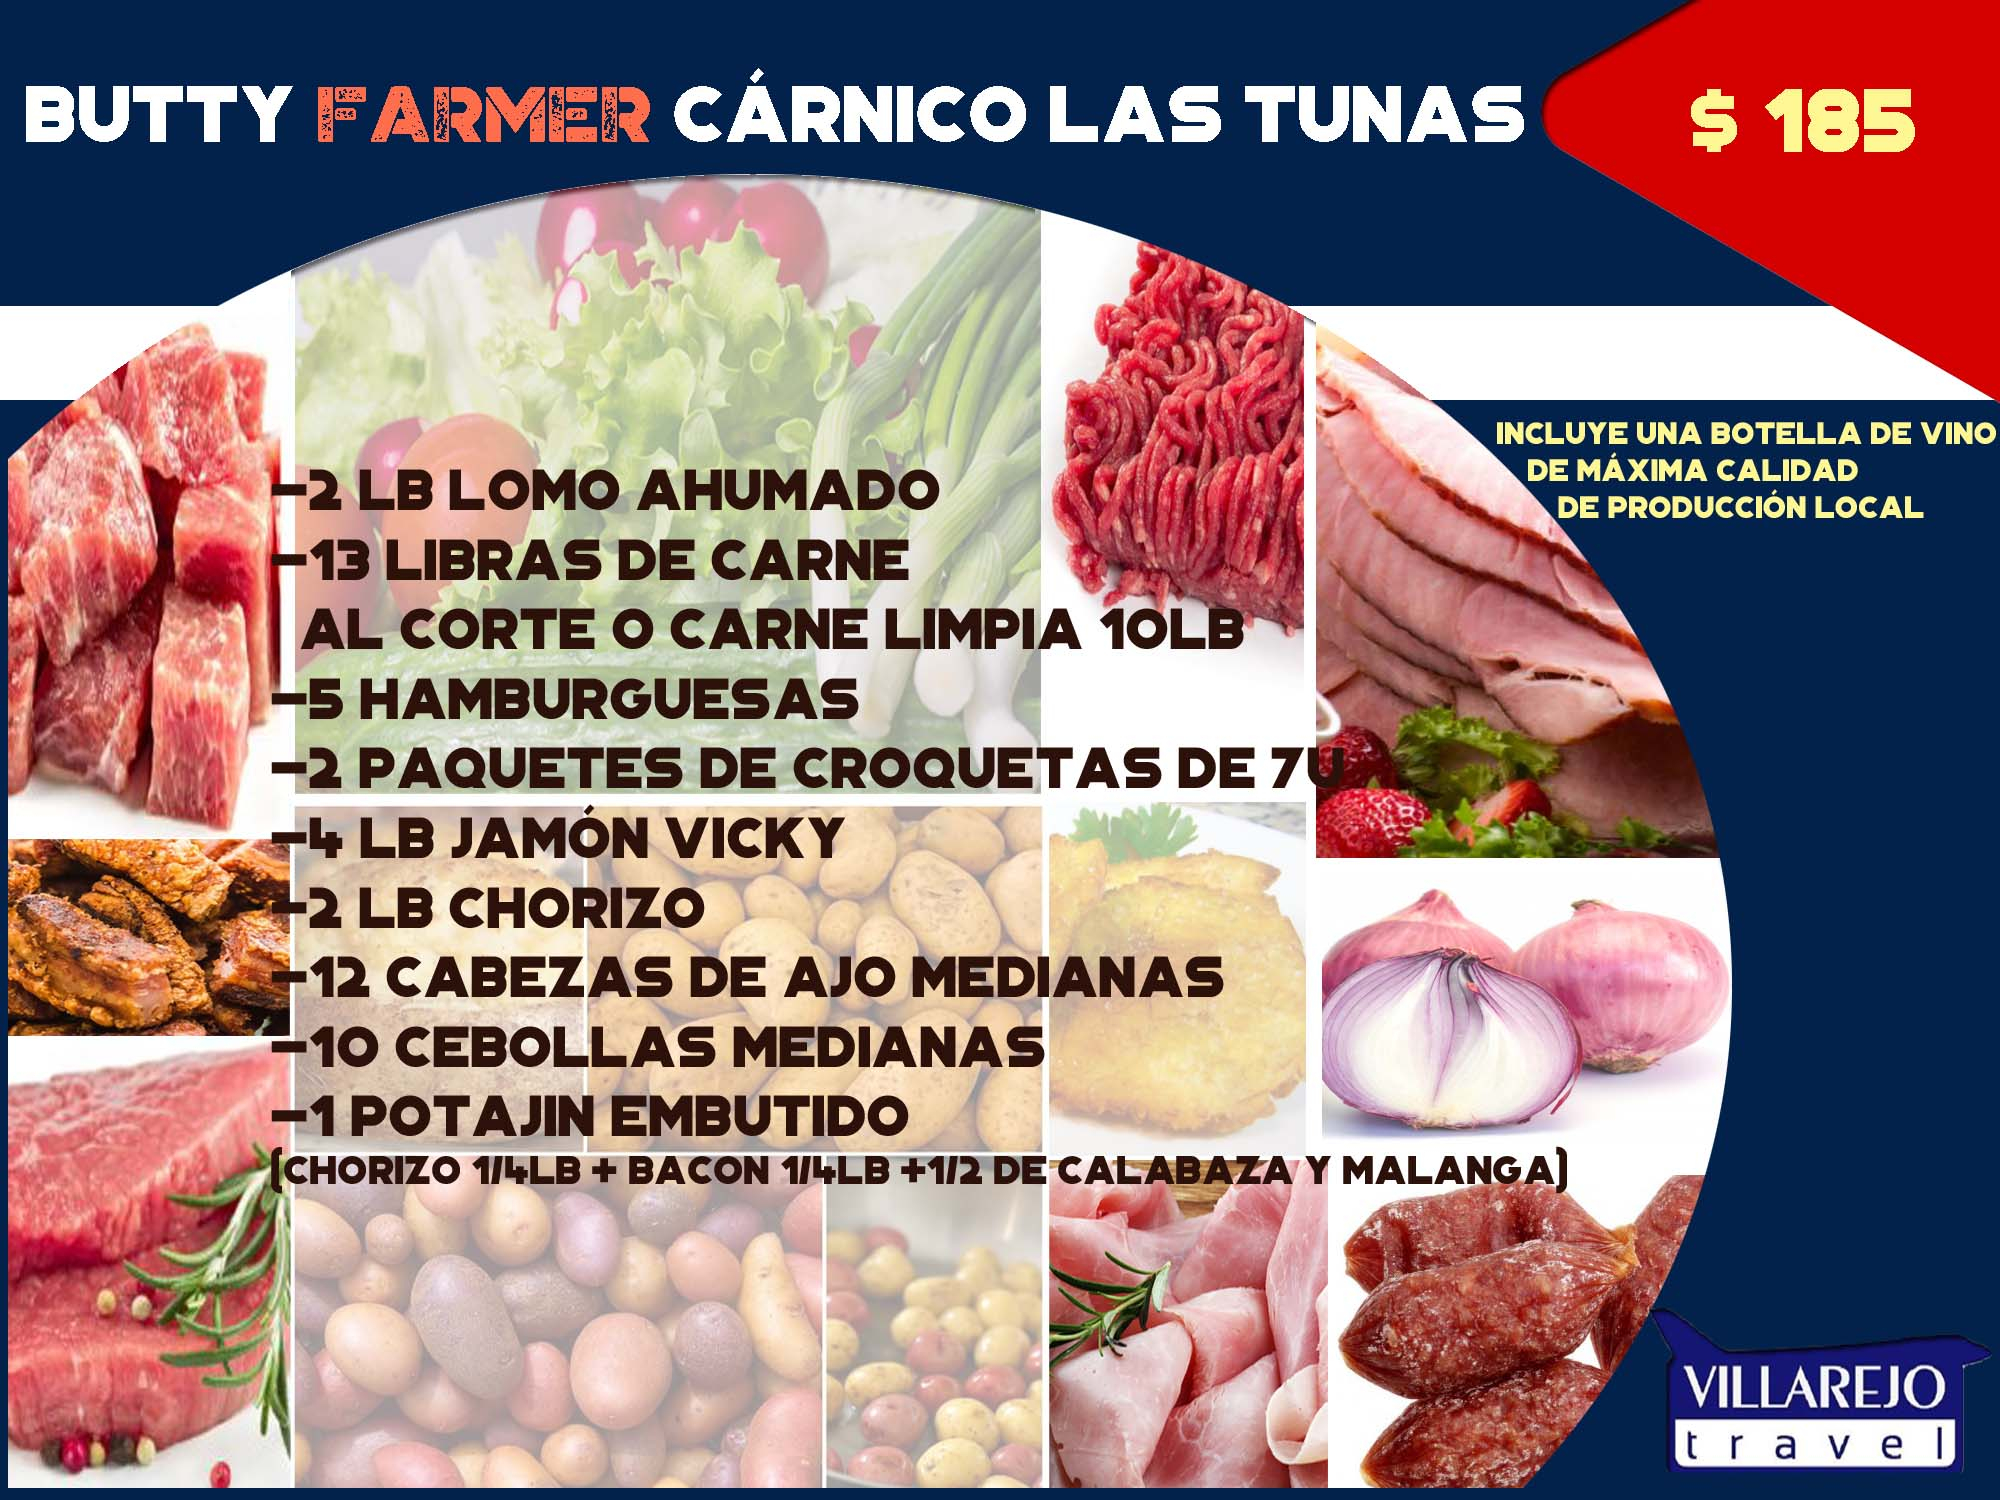 Butty Farmer Cárnico Las Tunas